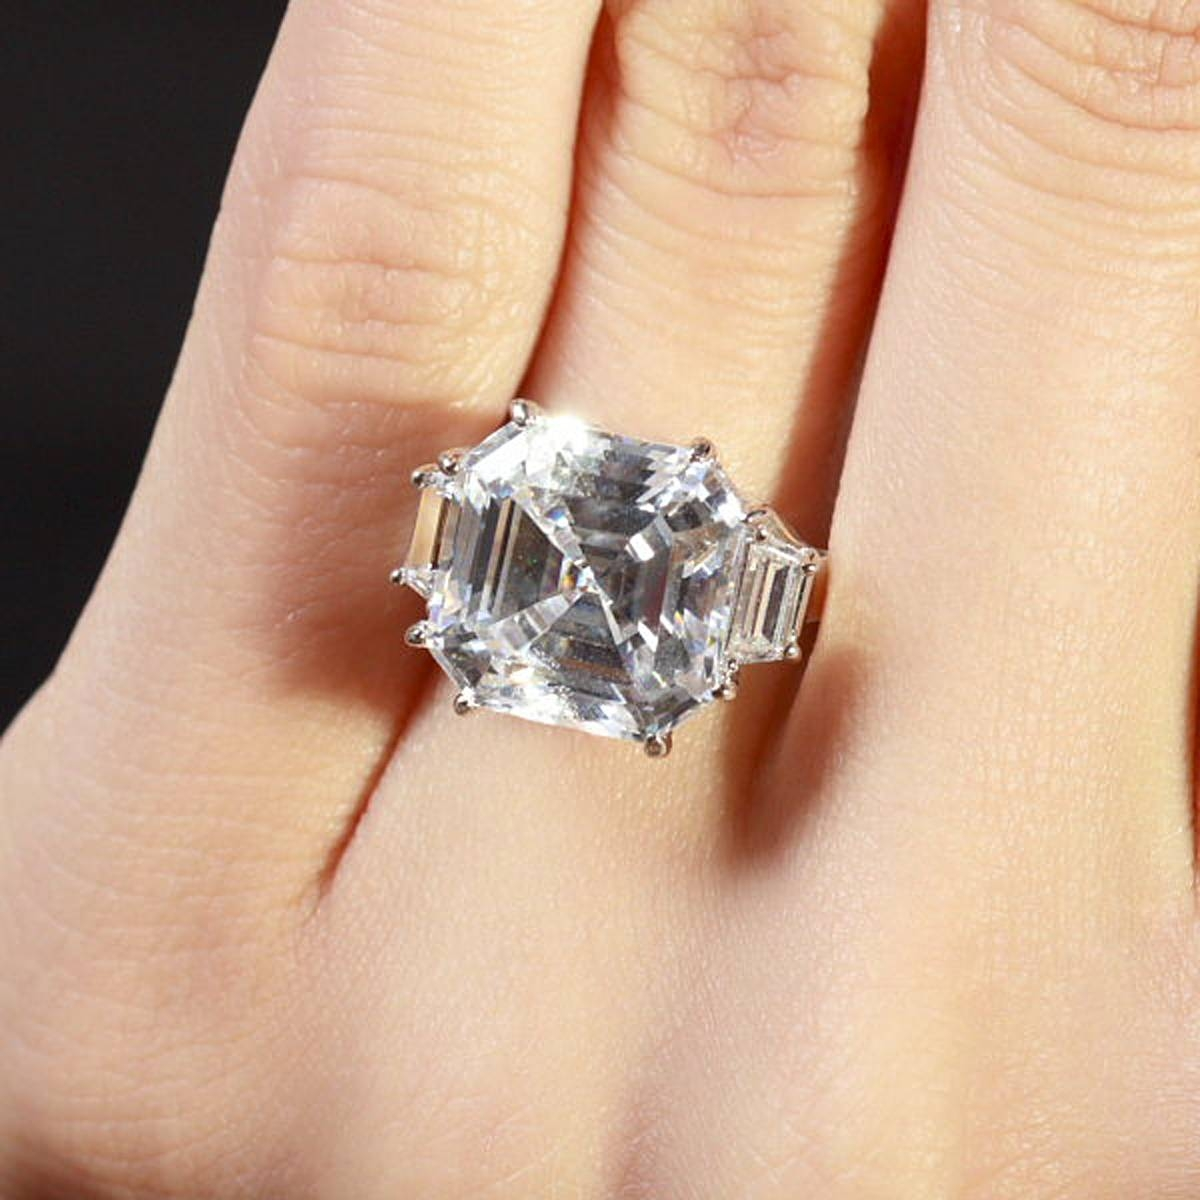 9 Ct Asscher Cut 3 Stone Engagement Ring Pertaining To Asscher Cut Wedding Rings (View 7 of 15)